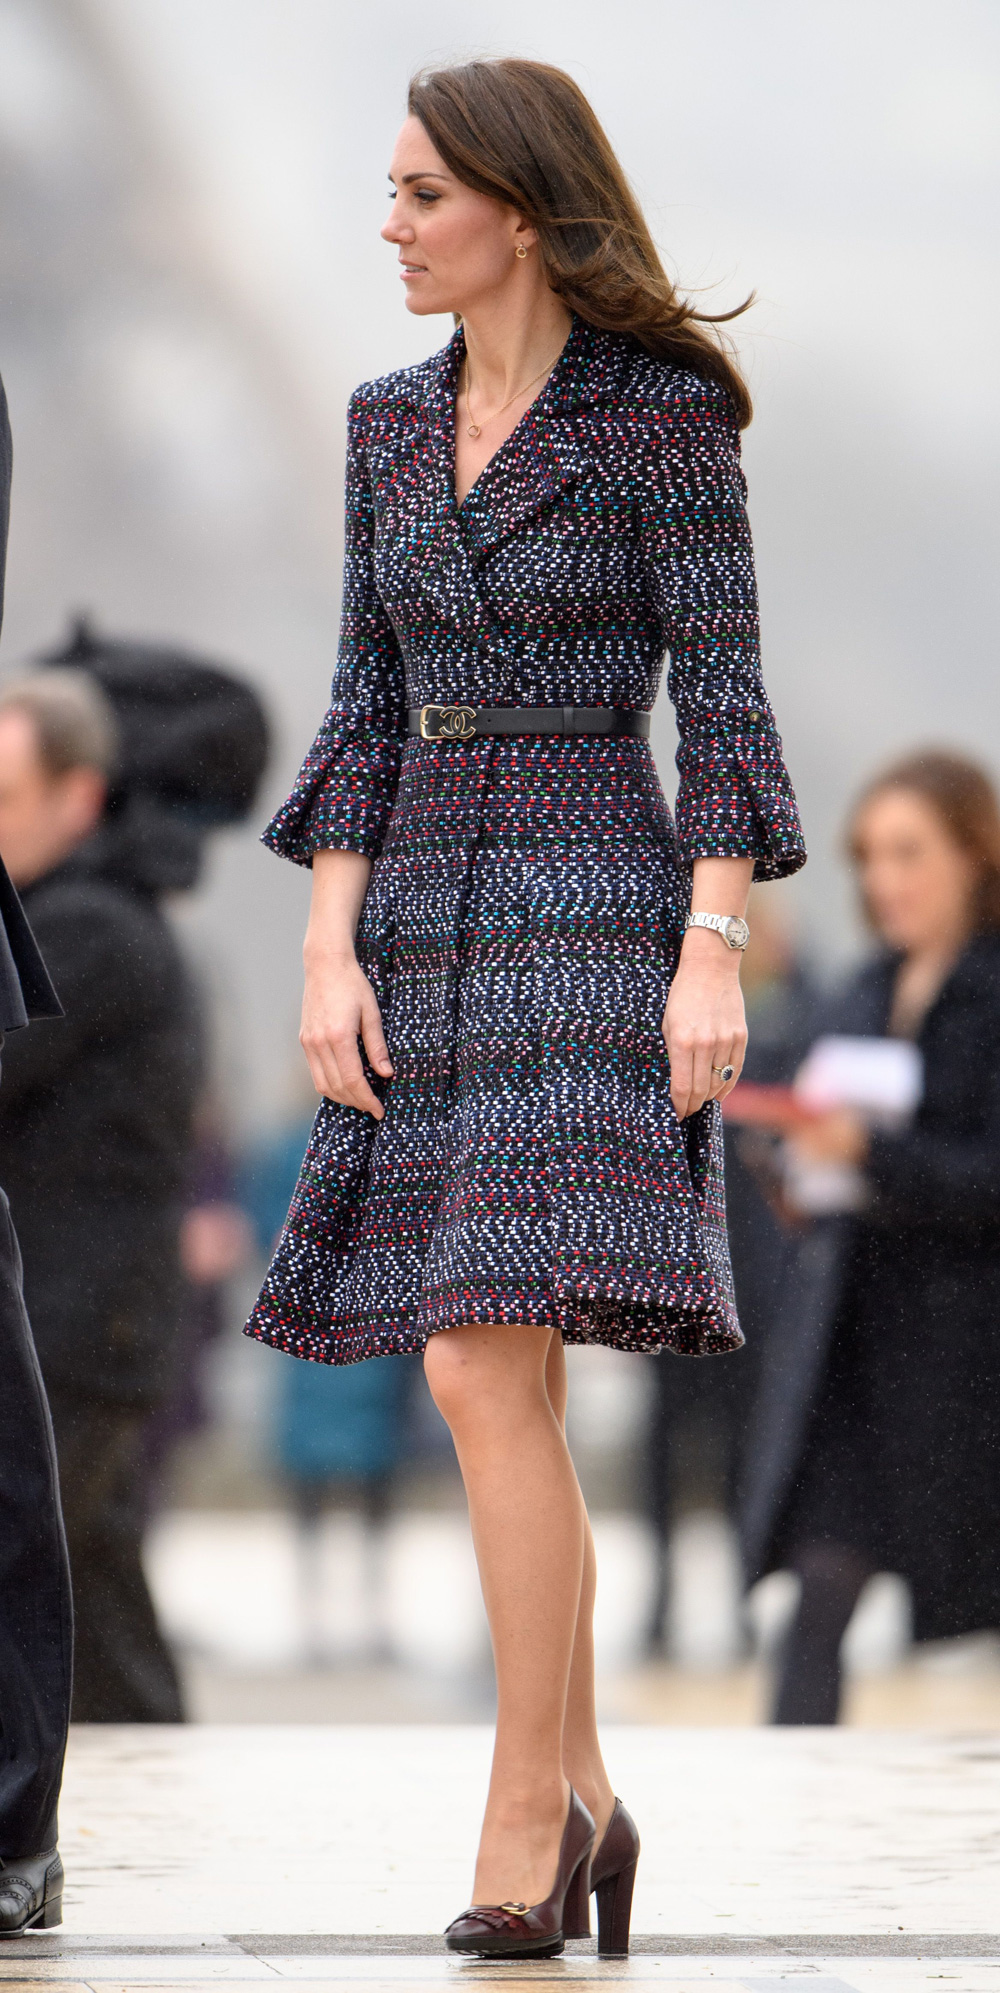 Kate Middleton Wearing Chanel on Day Two of Her Visit to ...